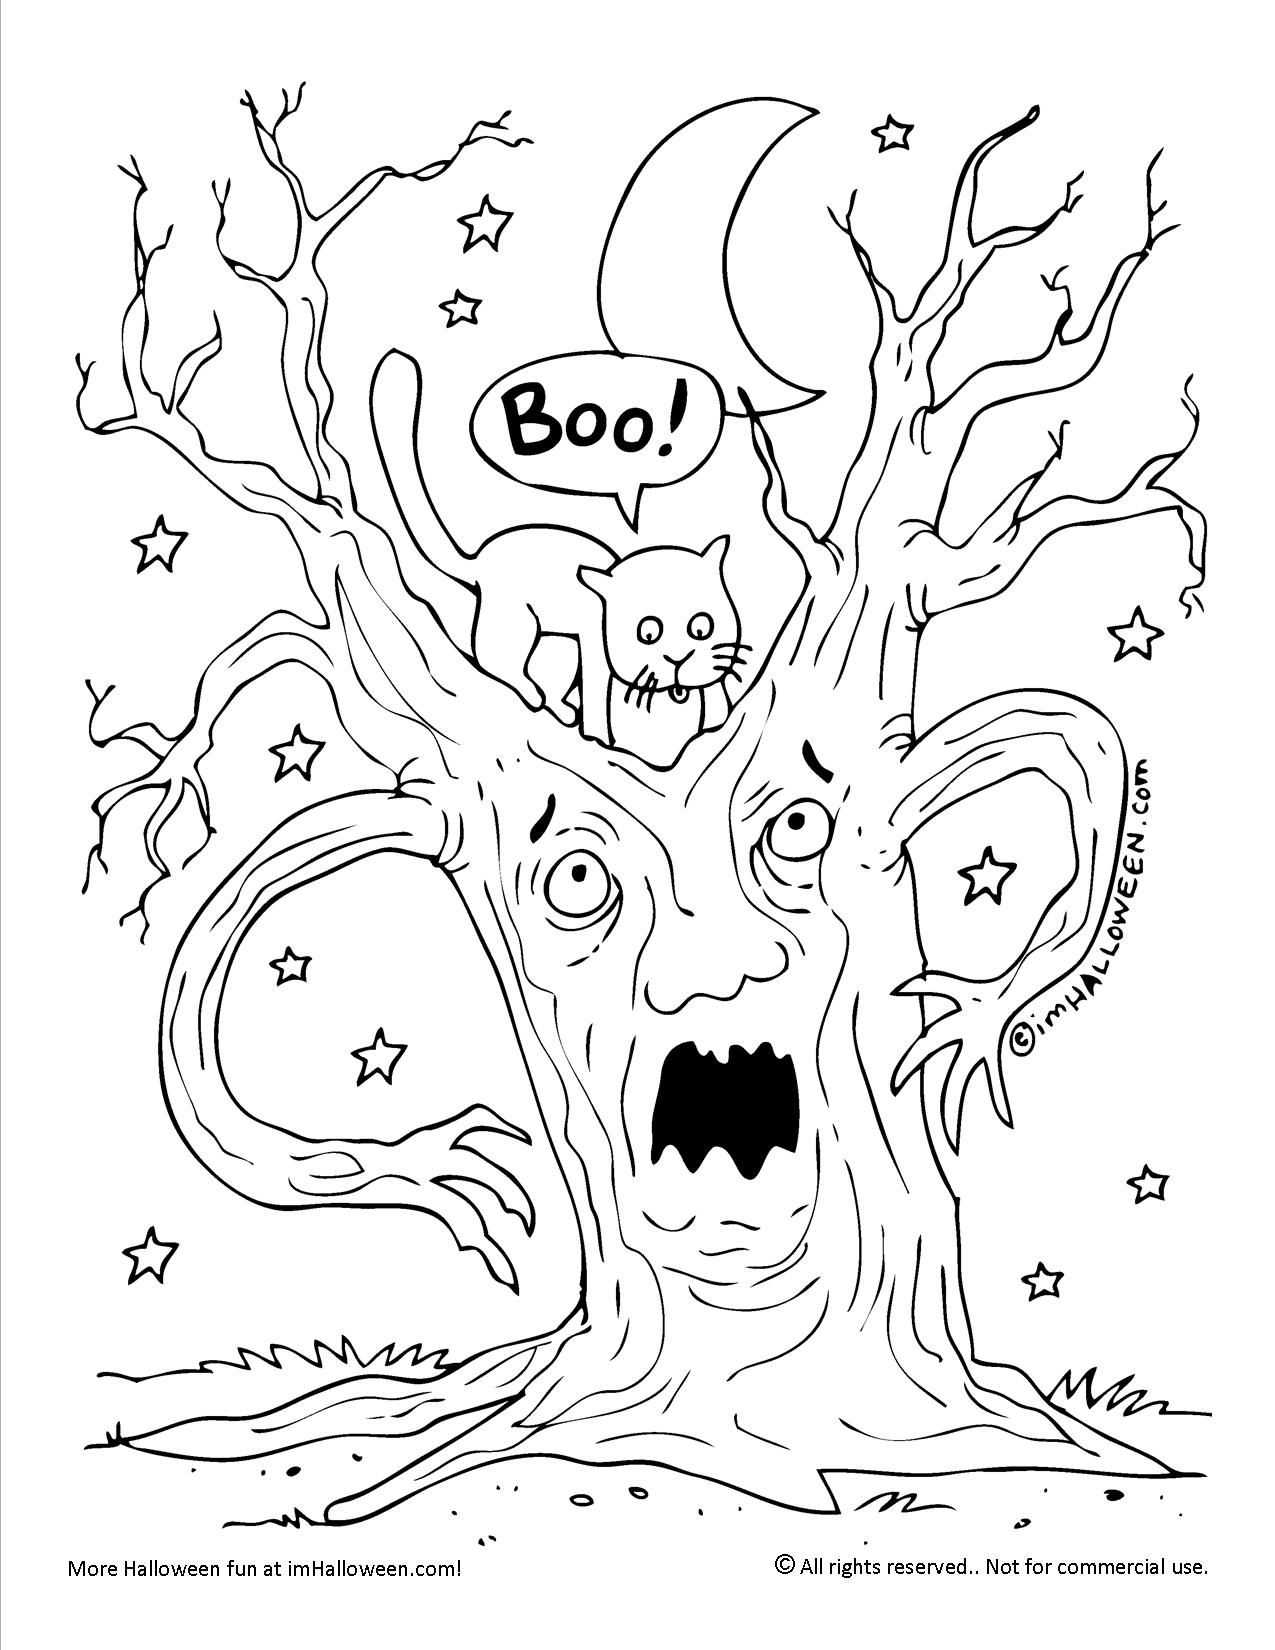 Coloring Halloween Pages Spooky Tree 2020 Halloween